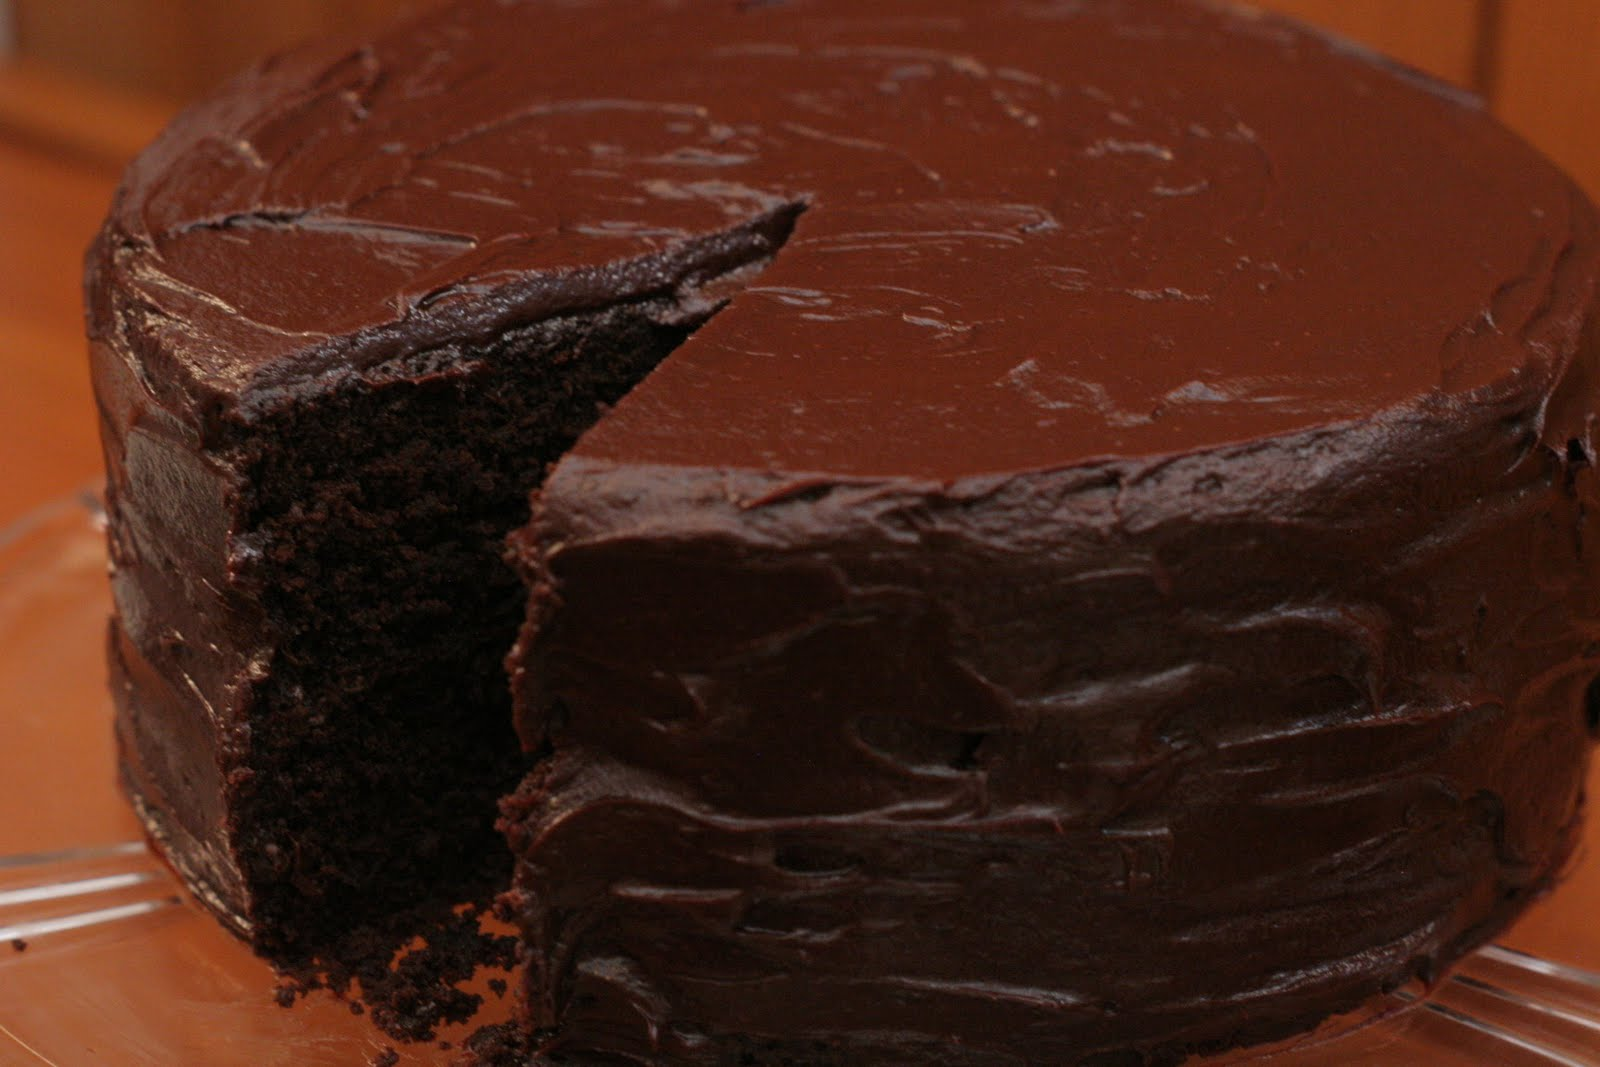 Four seasons of food: Chocolate cake with Nutella frosting